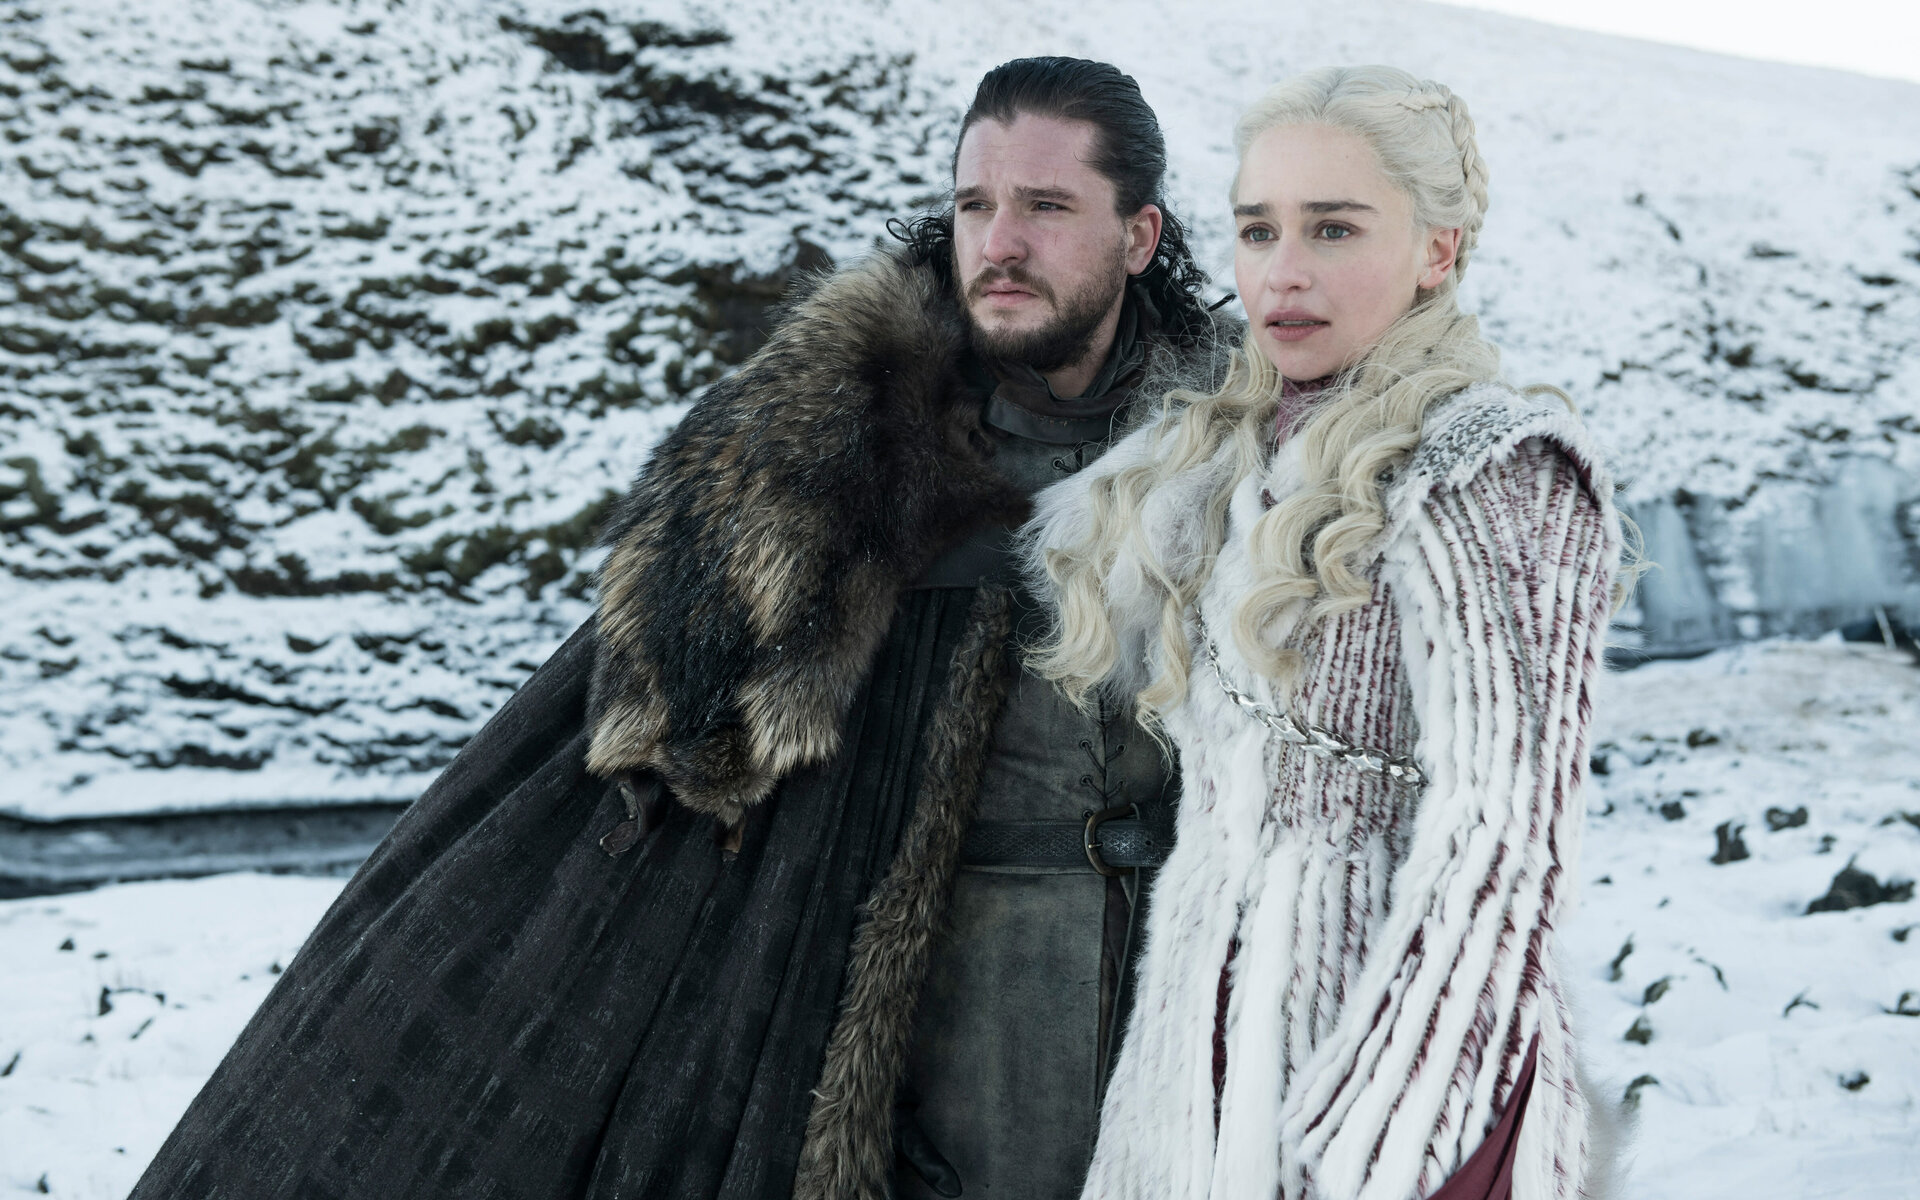 jon-snow-and-daenerys-targaryen-game-of-thrones-season-8-75.jpg